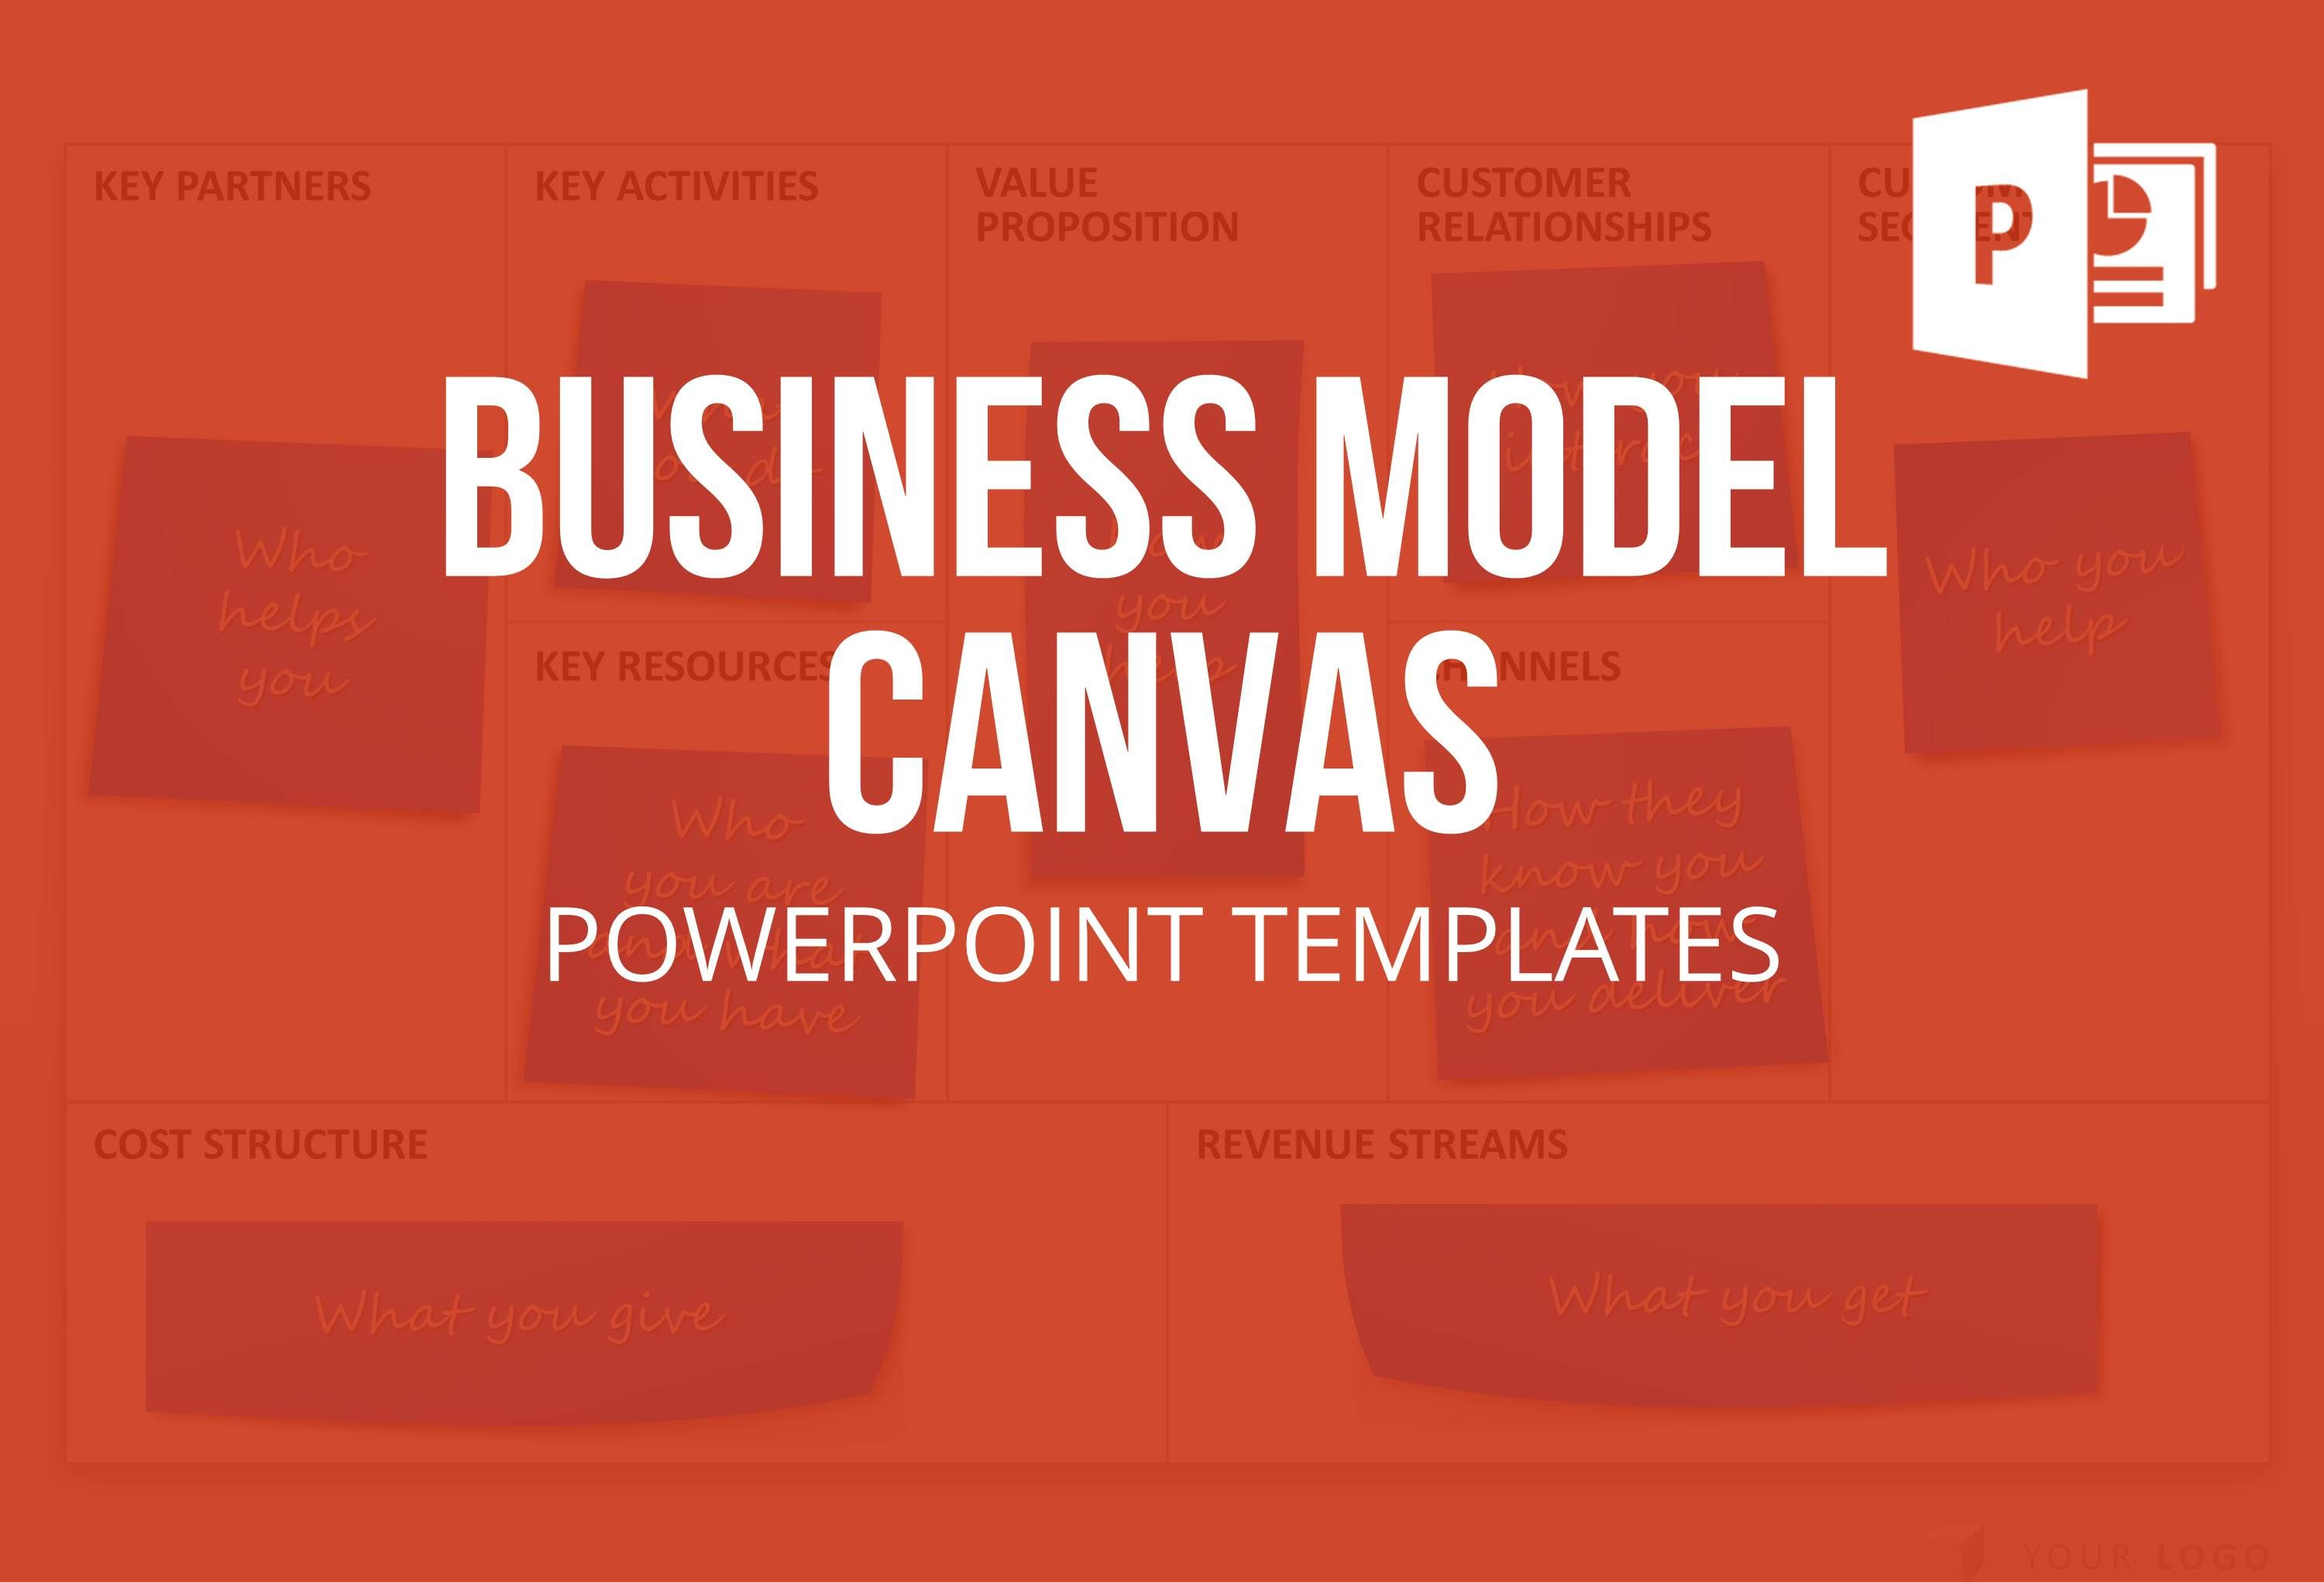 Business Model Canvas templates (BMC) for PowerPoint for